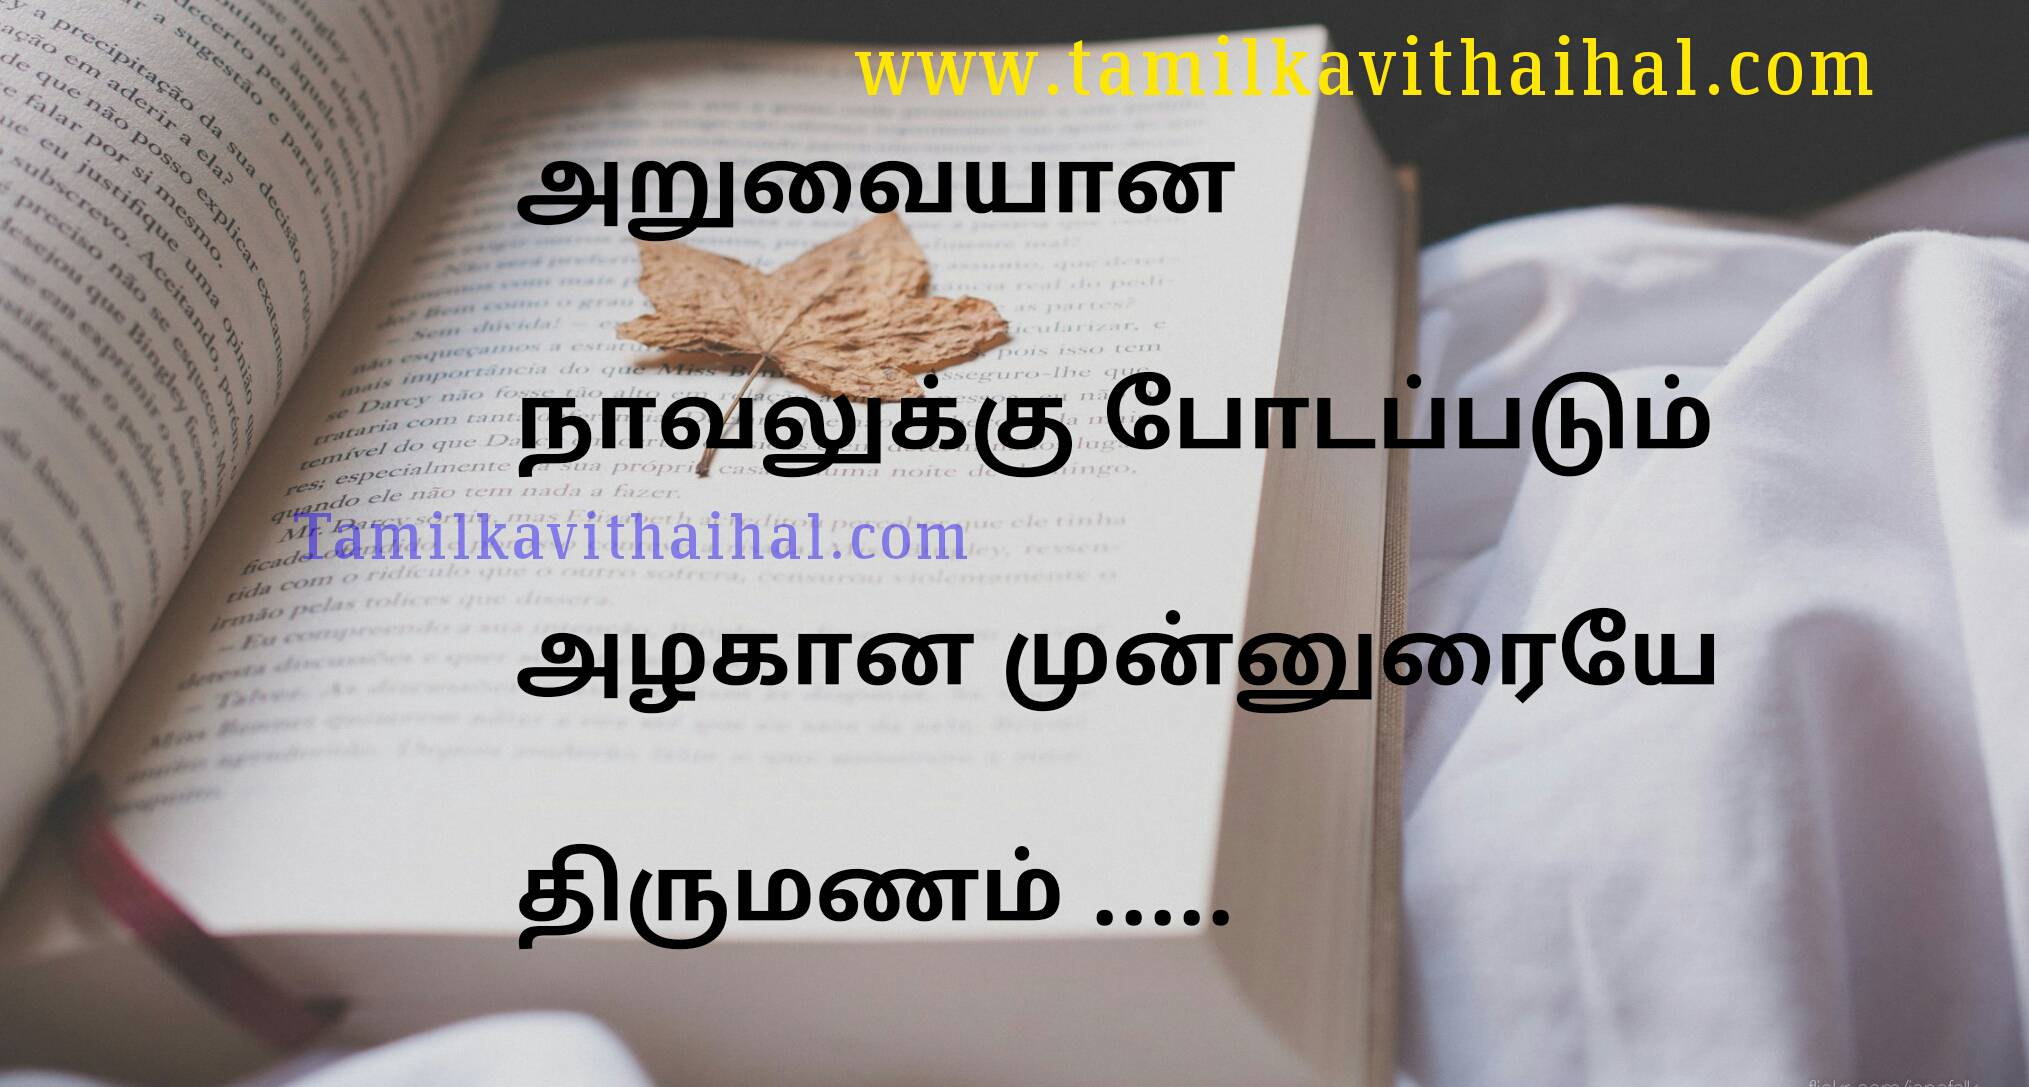 Funny love and arrenged marriage quotes unhappy kalyanam life status hubby couples thathuvam tamil kavithai facebook image